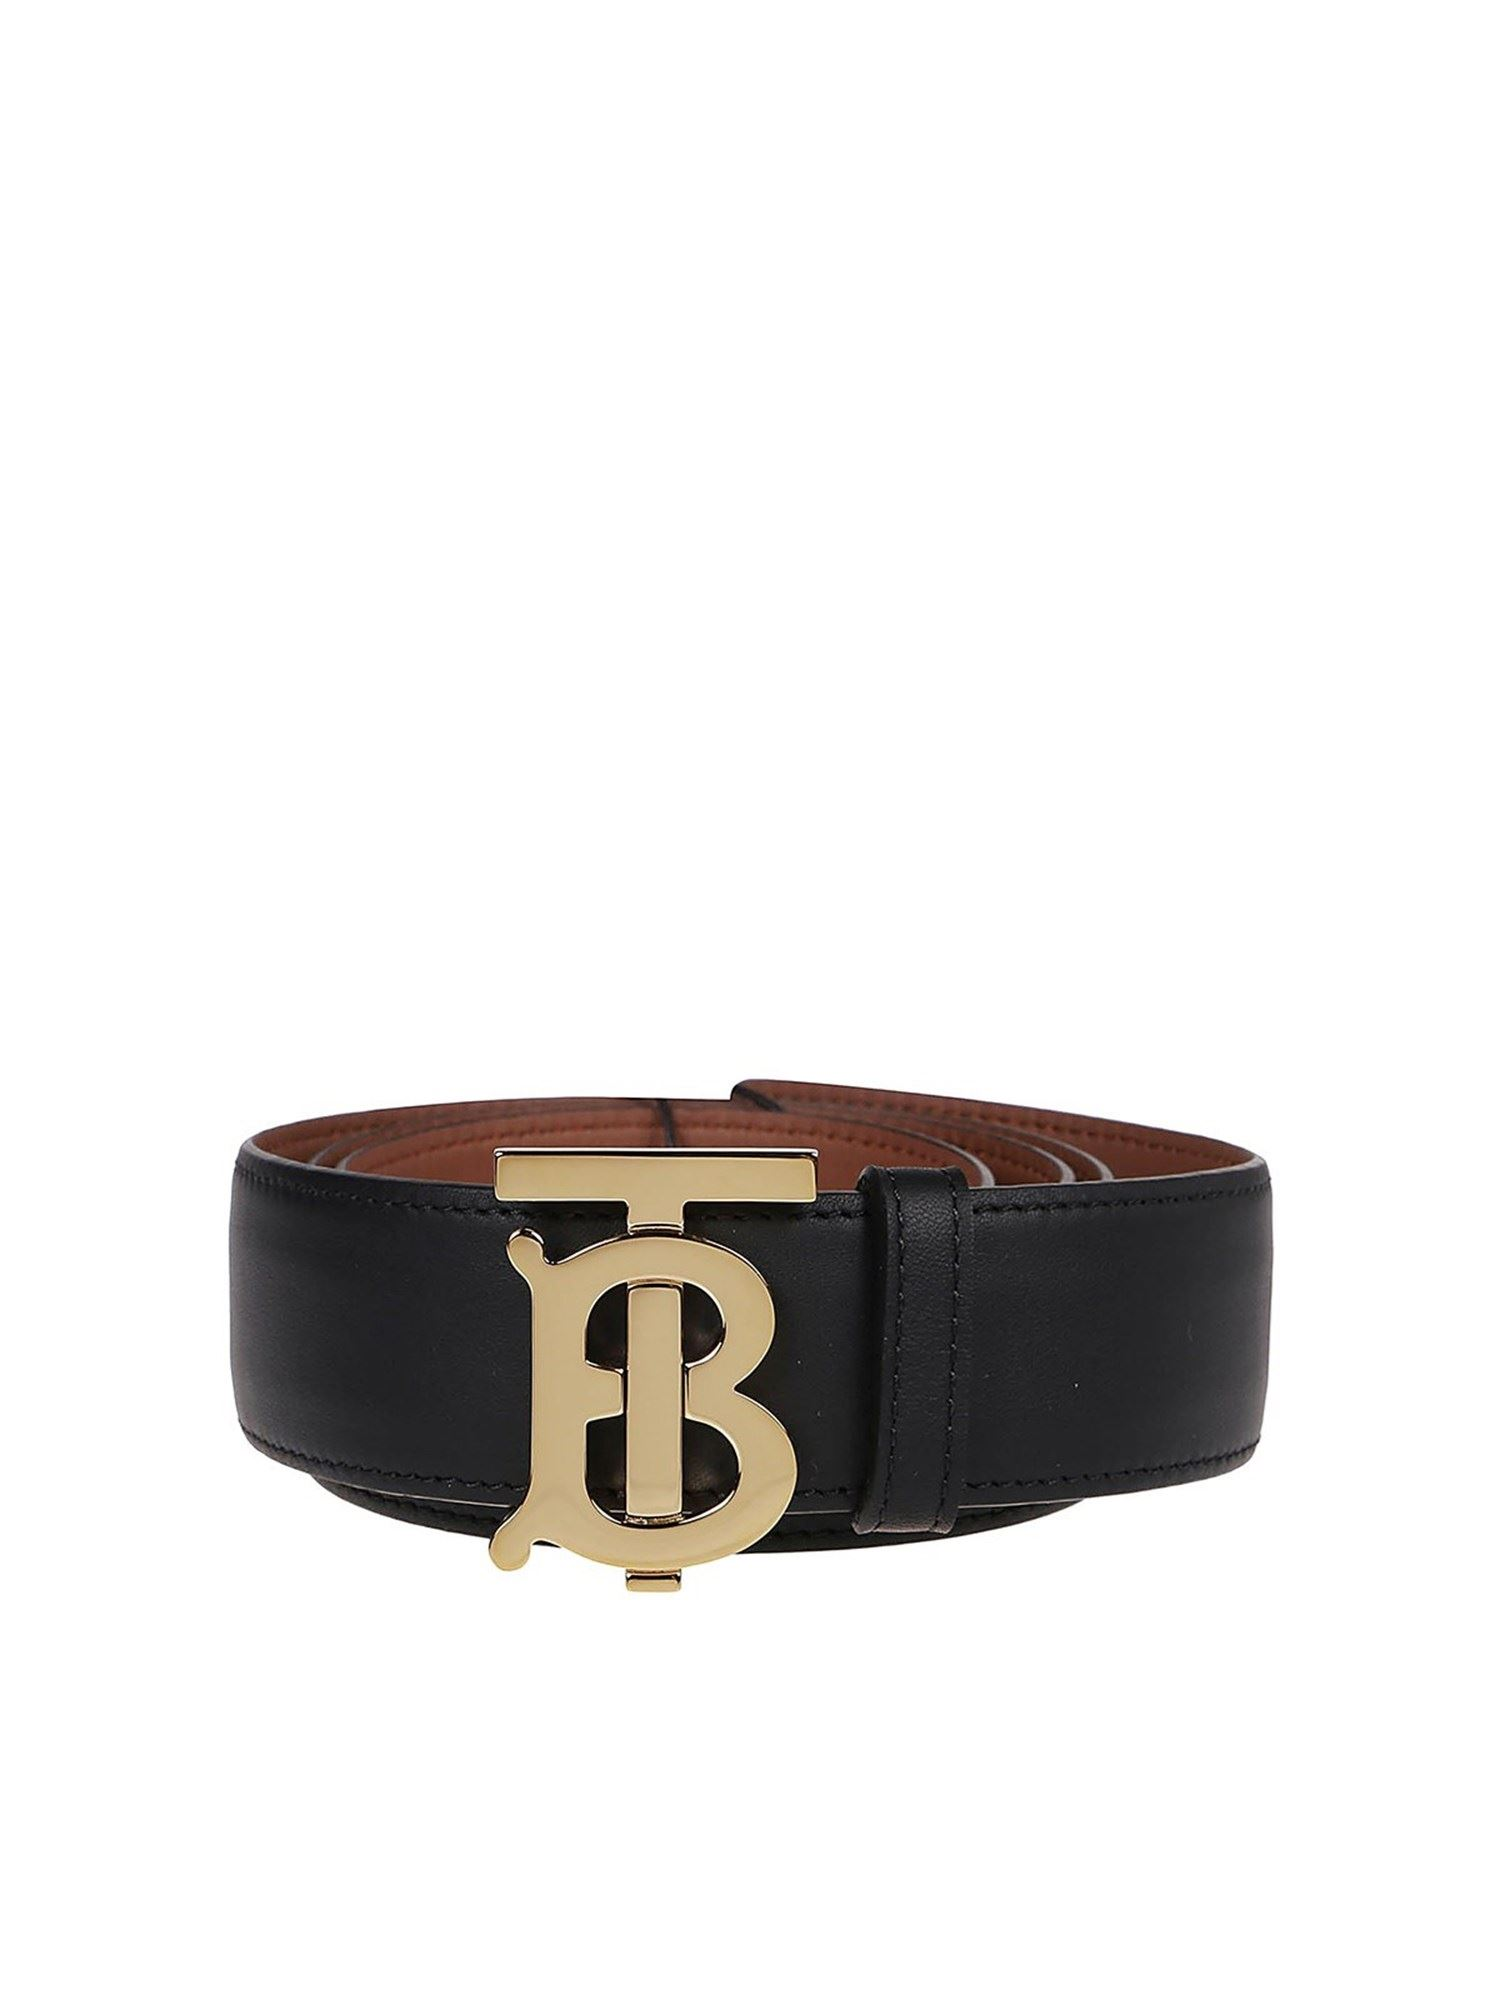 Burberry TB BUCKLE REVERSIBLE BELT IN BLACK